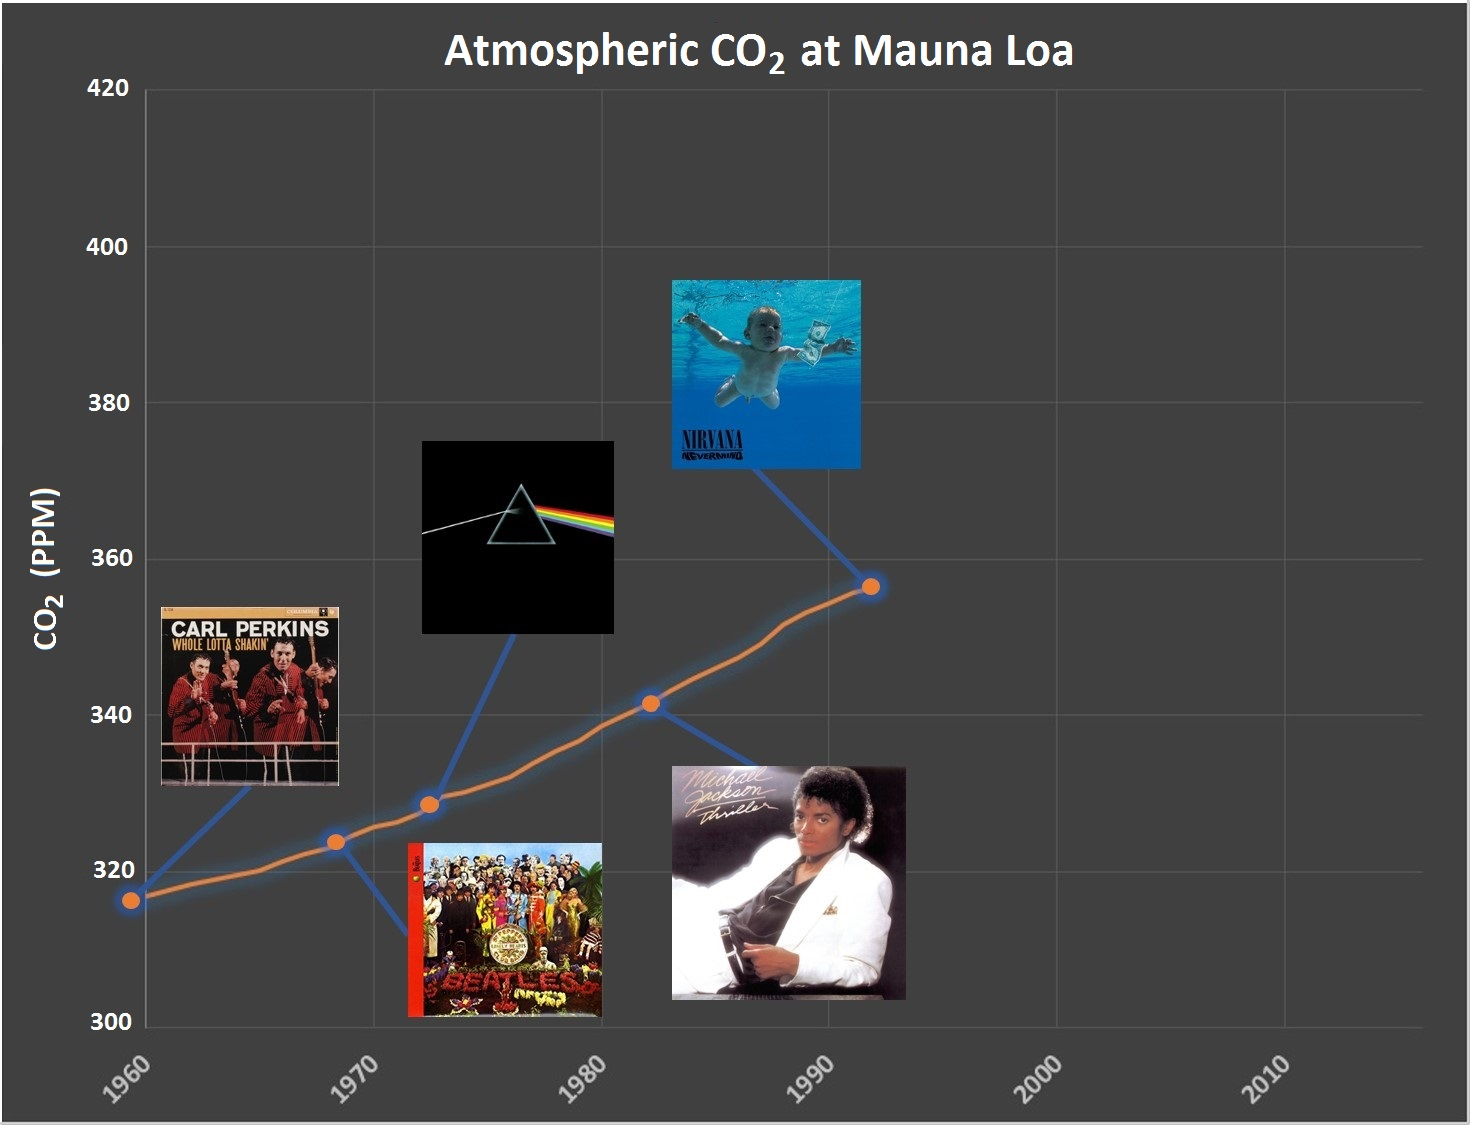 Year: 1992 CO2: 356 ppm (+15 ppm over 10 years)